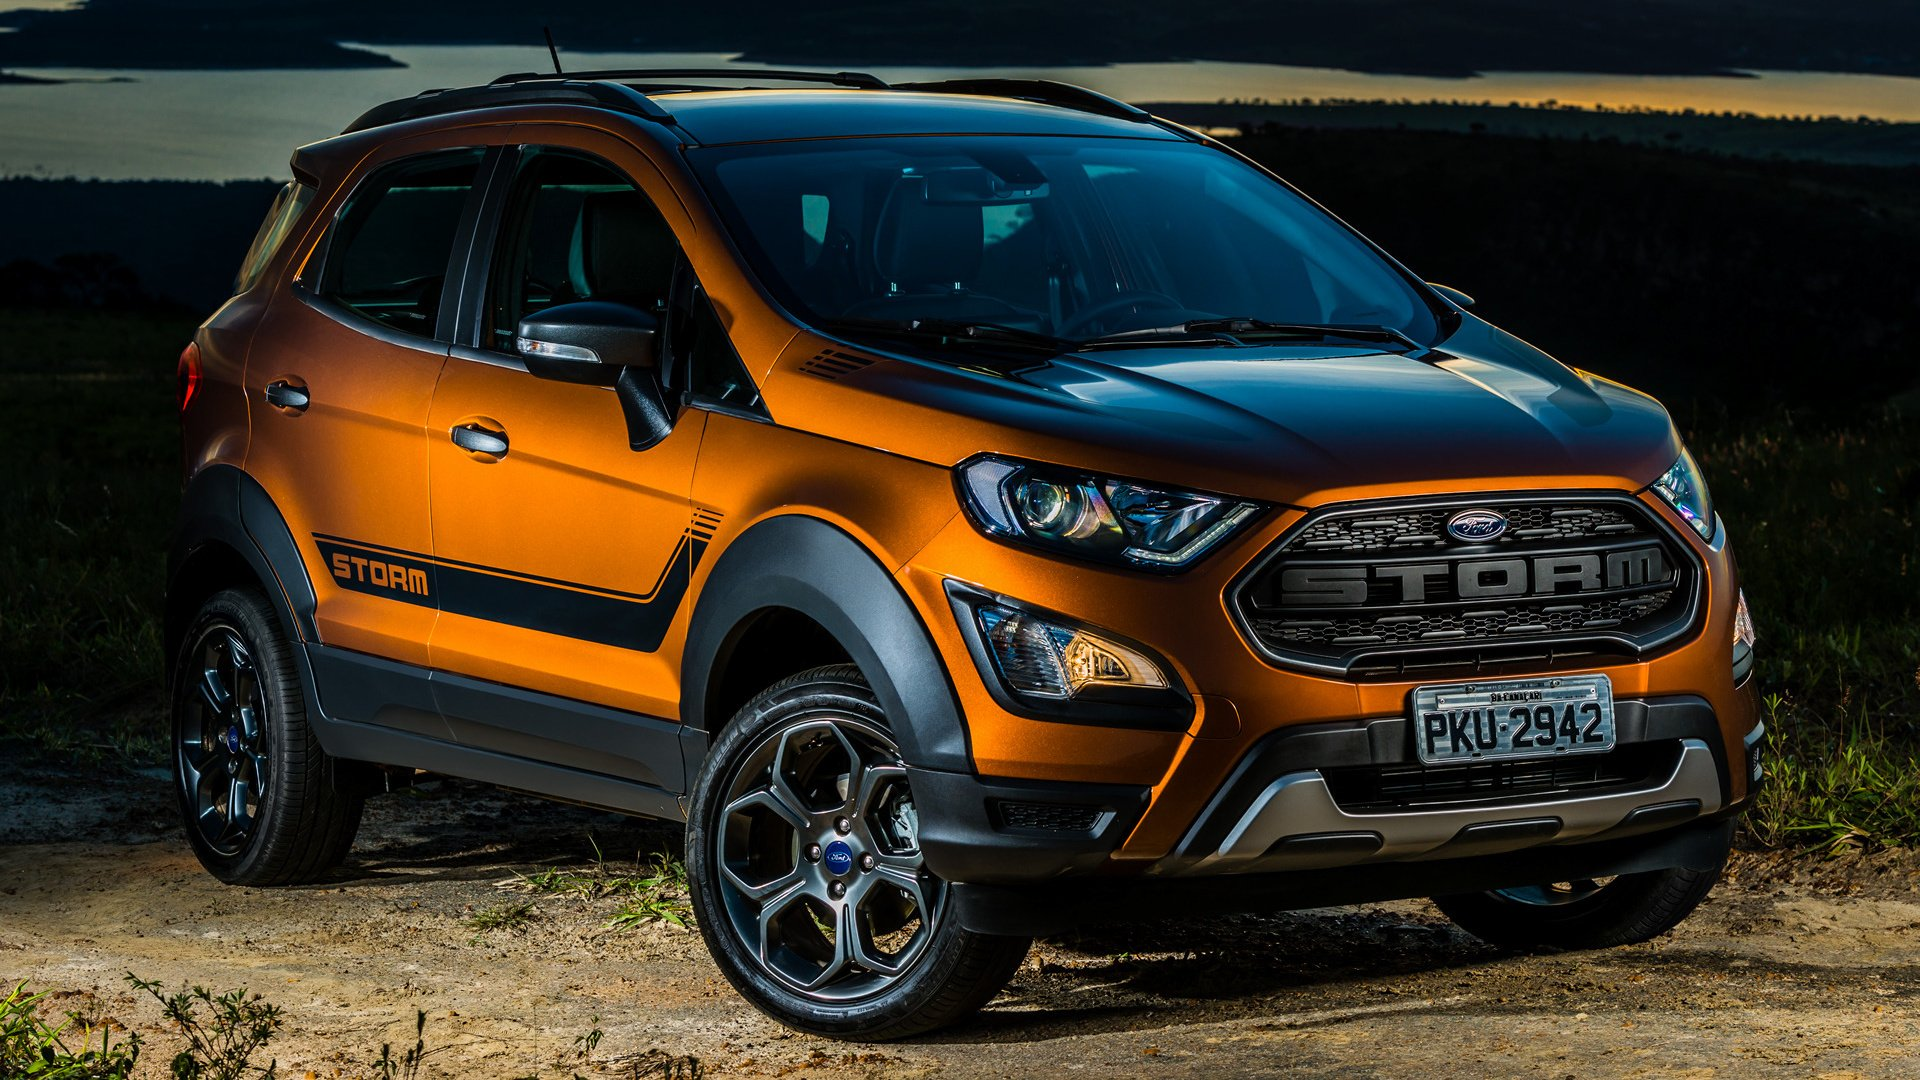 5 Ford Ecosport Storm Hd Wallpapers Background Images Wallpaper Abyss